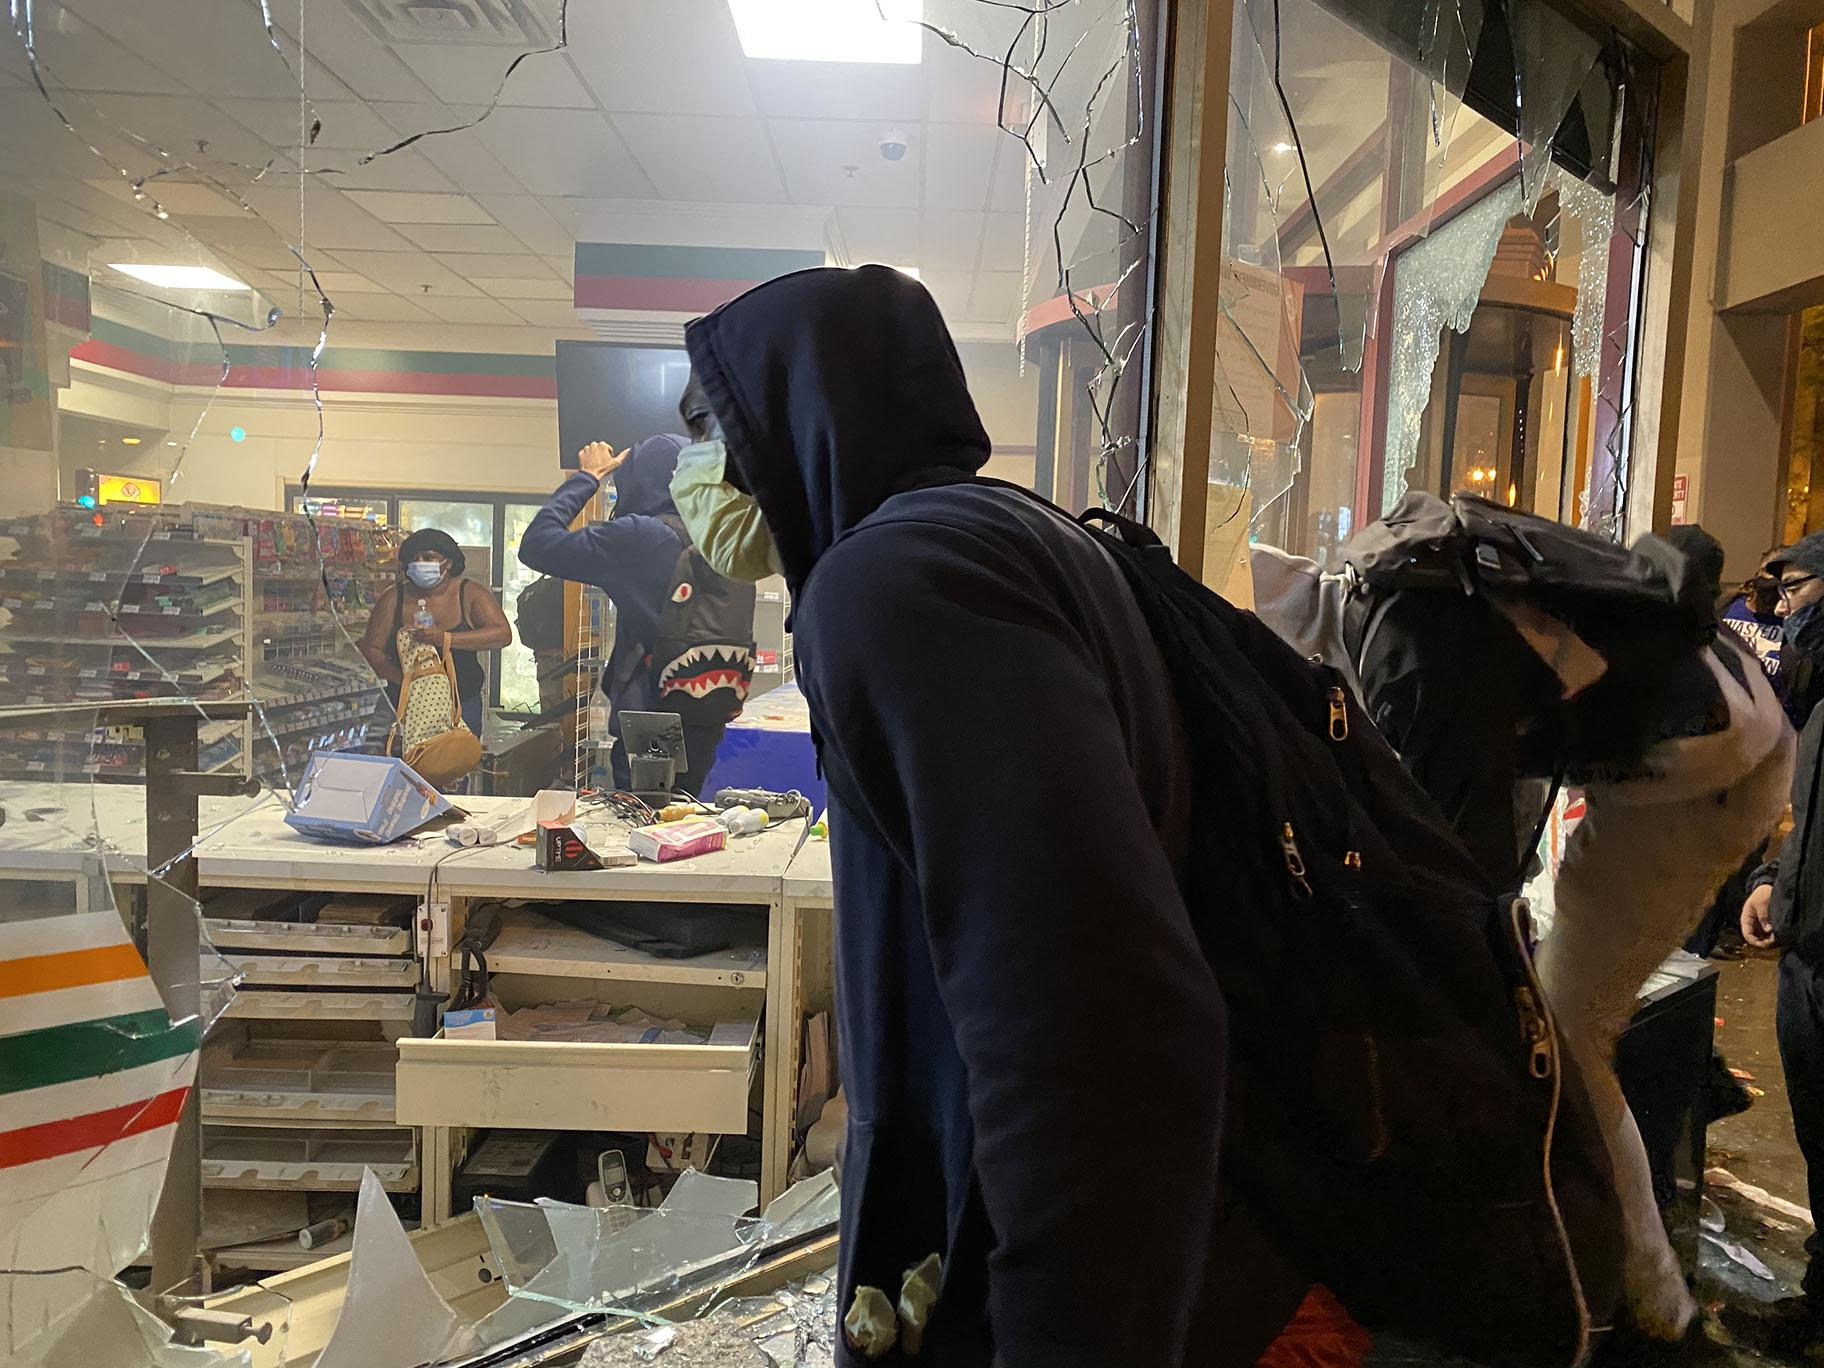 Protests on Saturday turned violent as some looters smashed store windows and stole merchandise. (Hugo Balta / WTTW News)